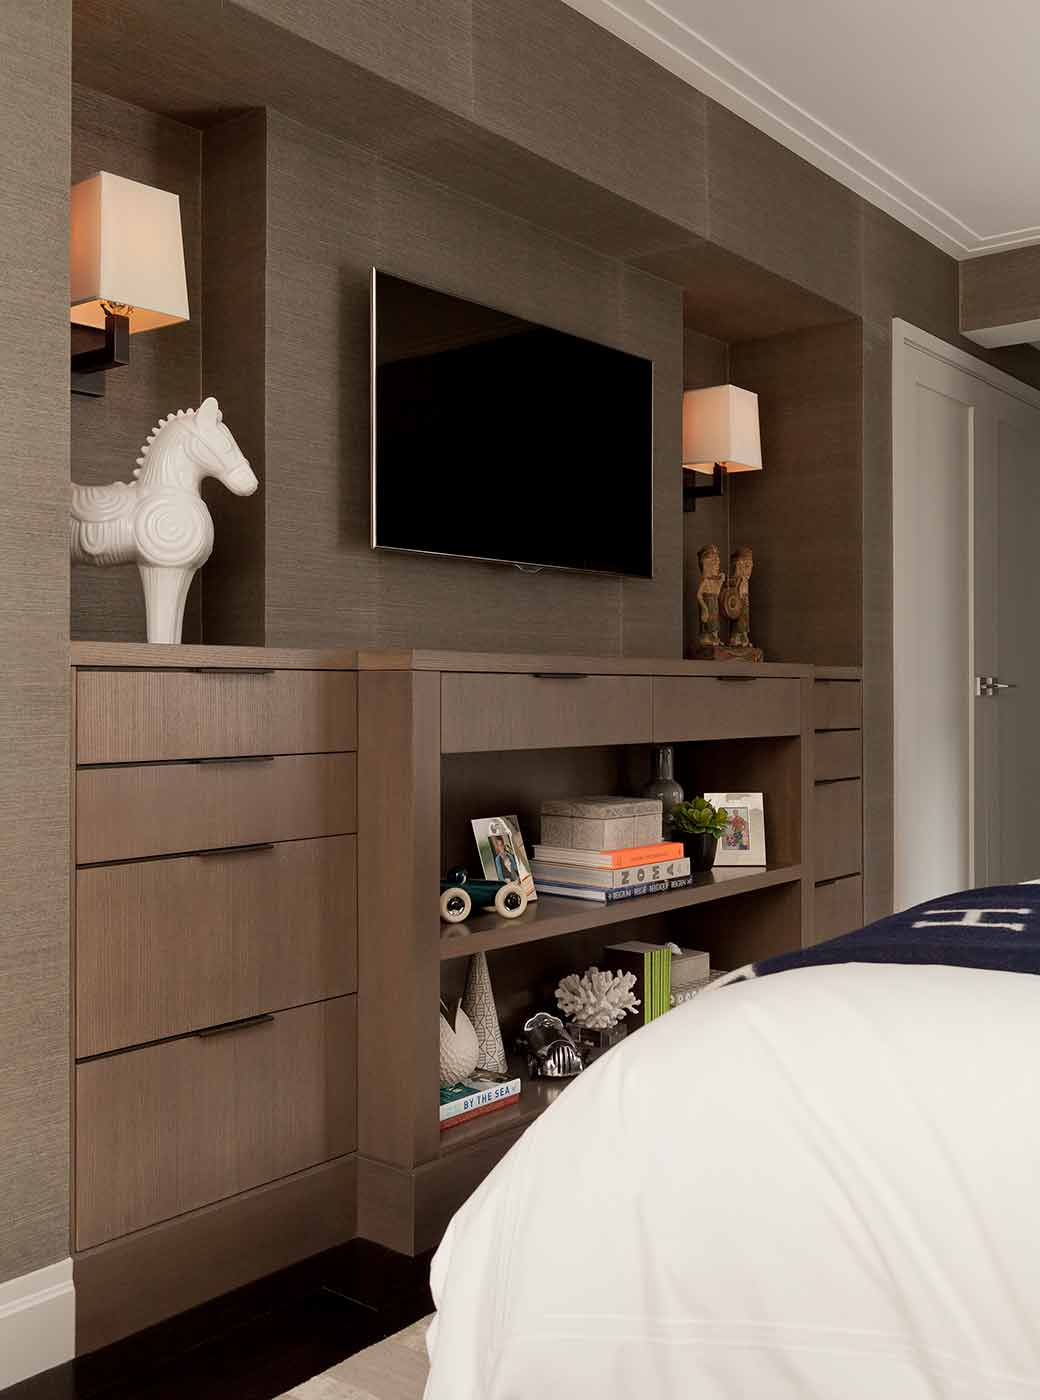 Master suite with a custom built-in for storage complete with custom hardware in the form of asymmetrical bronze bands